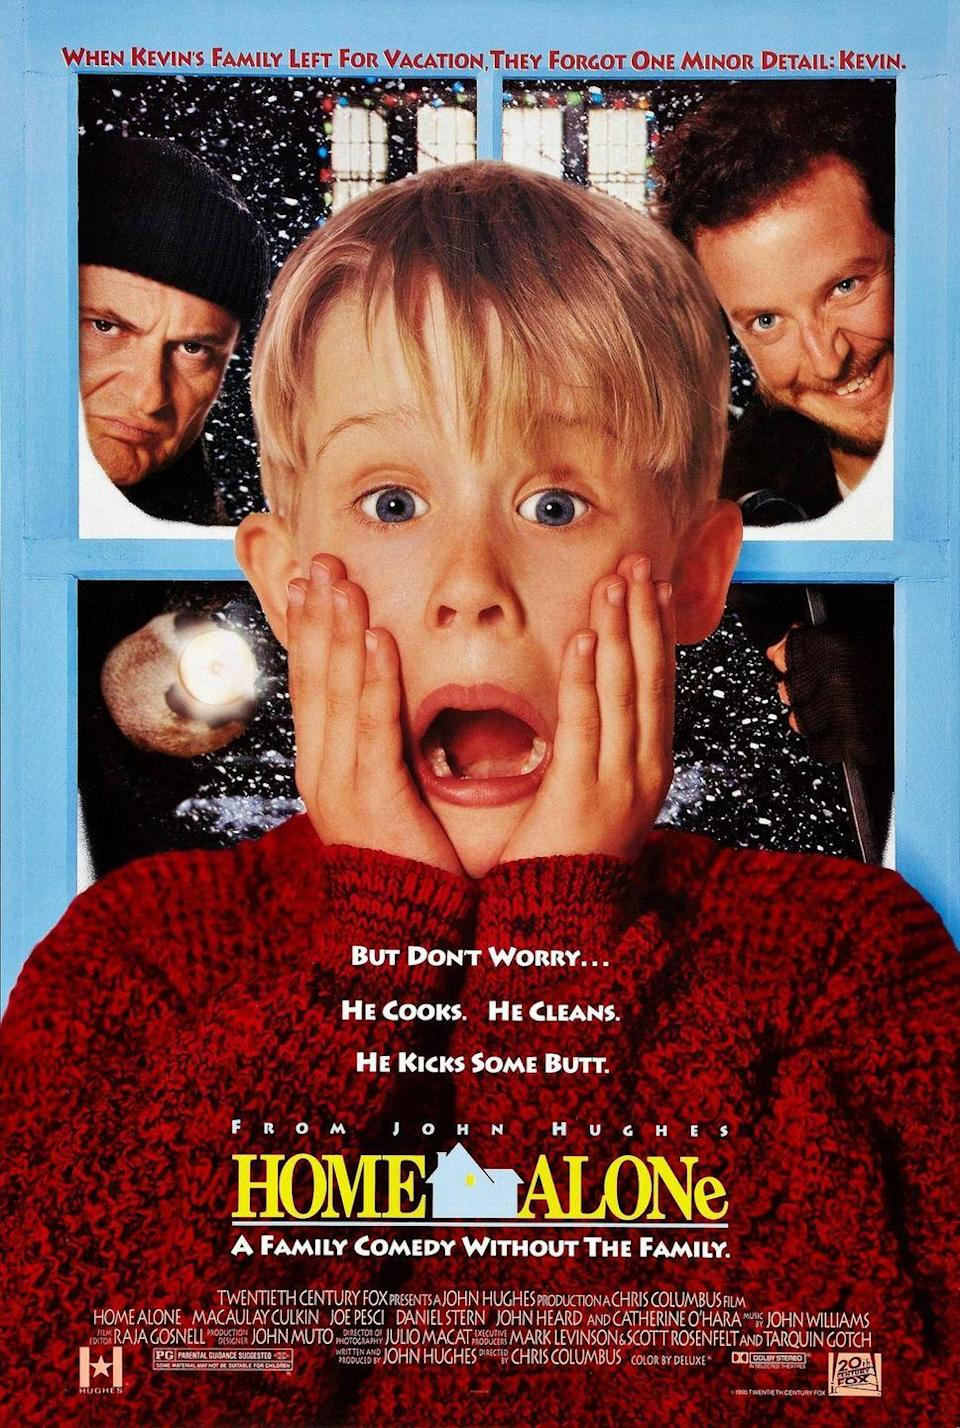 """<p>Inspiring a series of films, <em>Home Alone </em>started at 671 Lincoln Ave. It's apparently valued at $1 million dollars according to <em><a href=""""https://www.zillow.com/homedetails/671-Lincoln-Ave-Winnetka-IL-60093/3360197_zpid/"""" rel=""""nofollow noopener"""" target=""""_blank"""" data-ylk=""""slk:Zillow"""" class=""""link rapid-noclick-resp"""">Zillow</a></em>. </p>"""